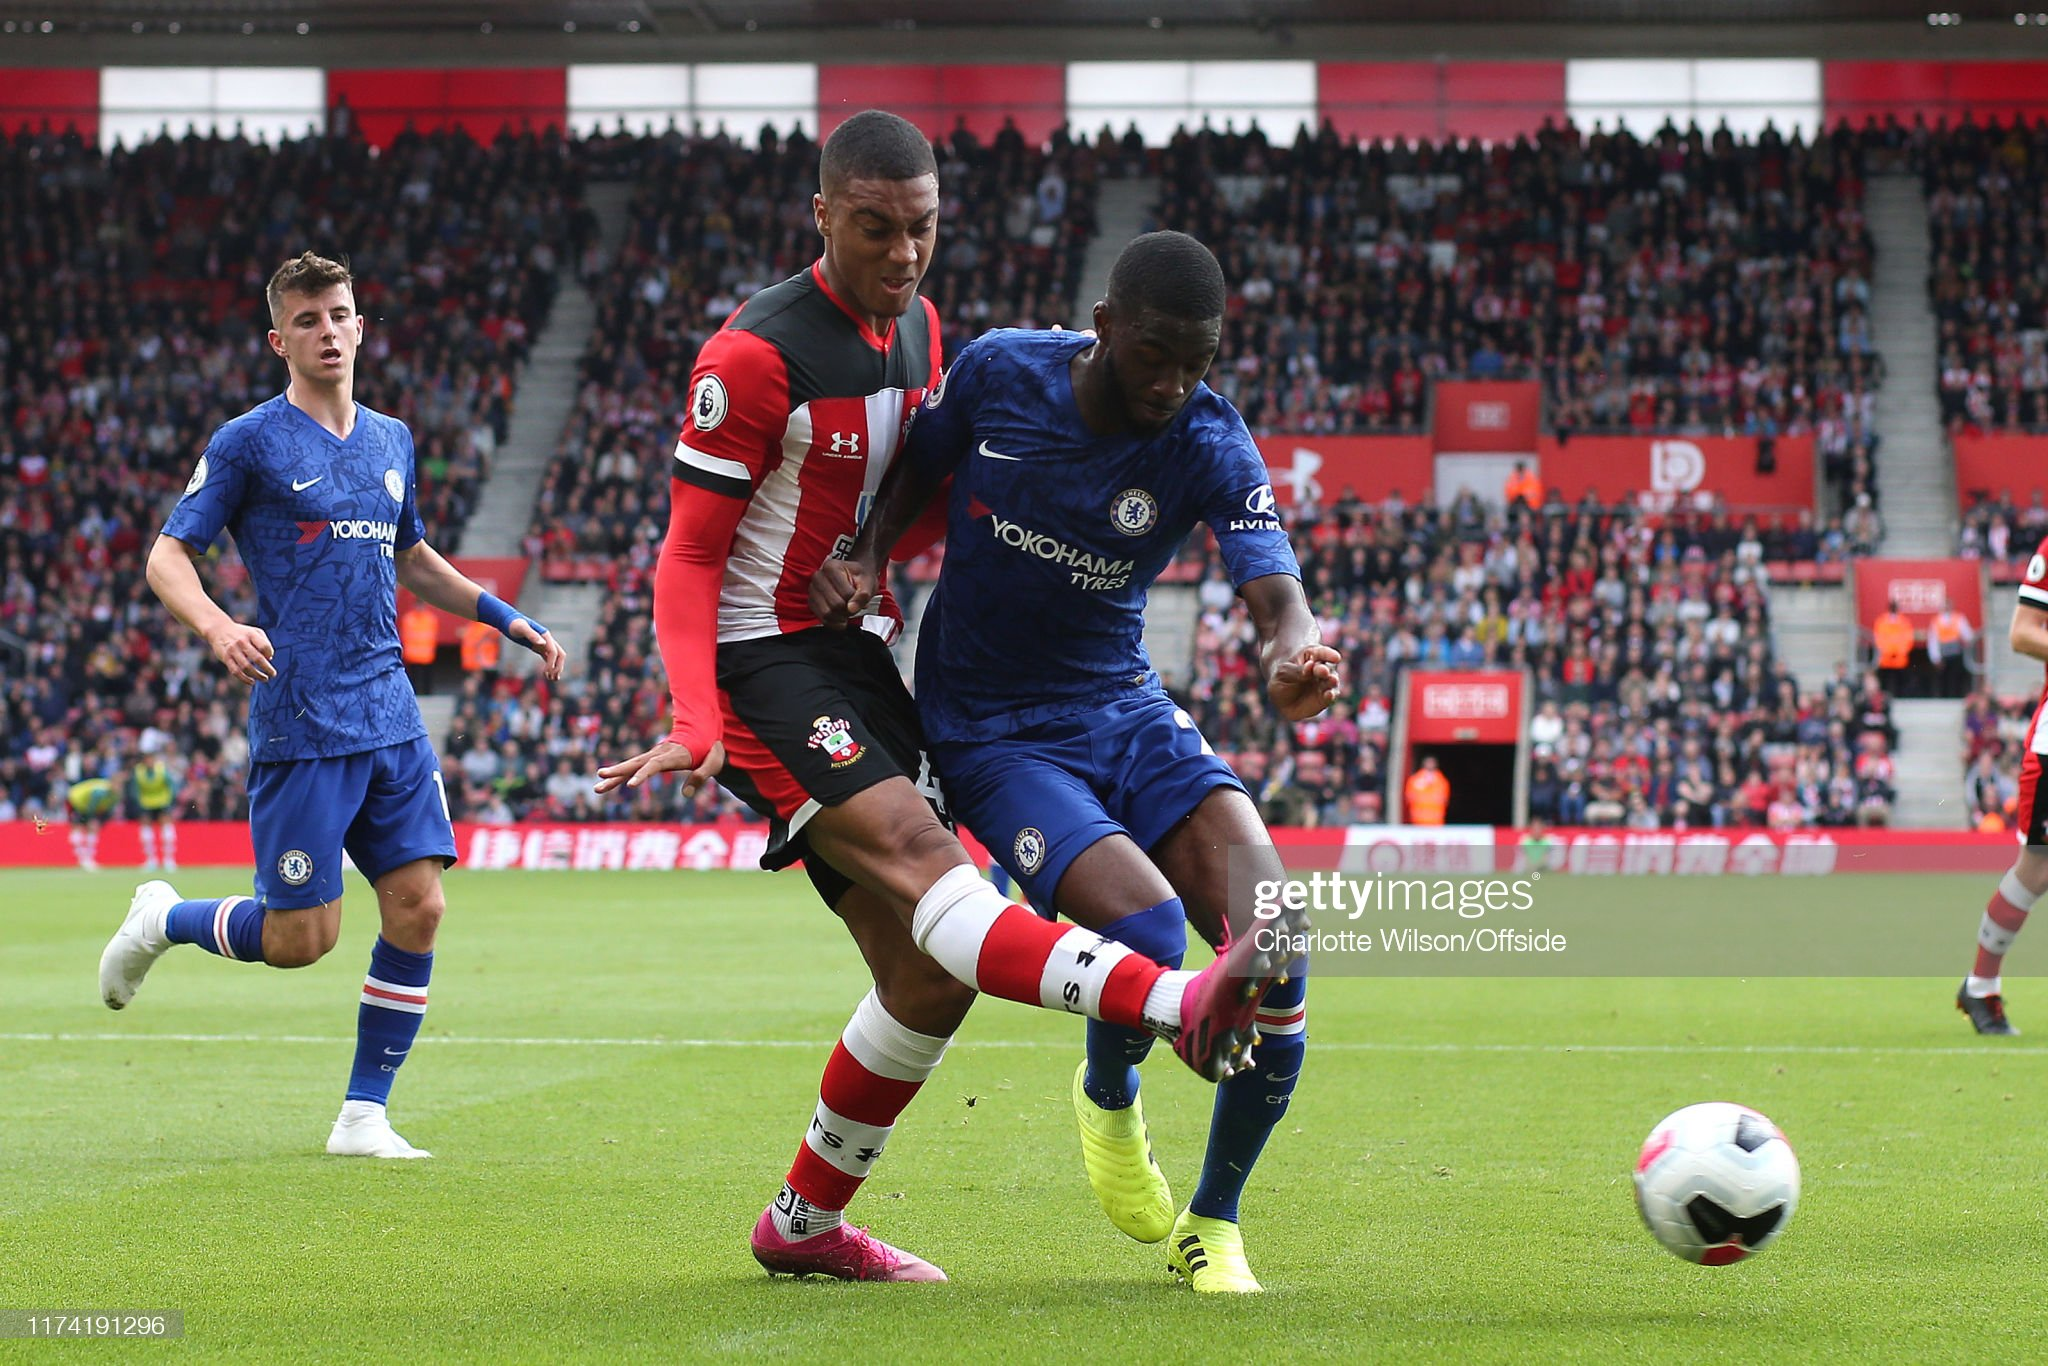 Chelsea v Southampton preview, prediction and odds